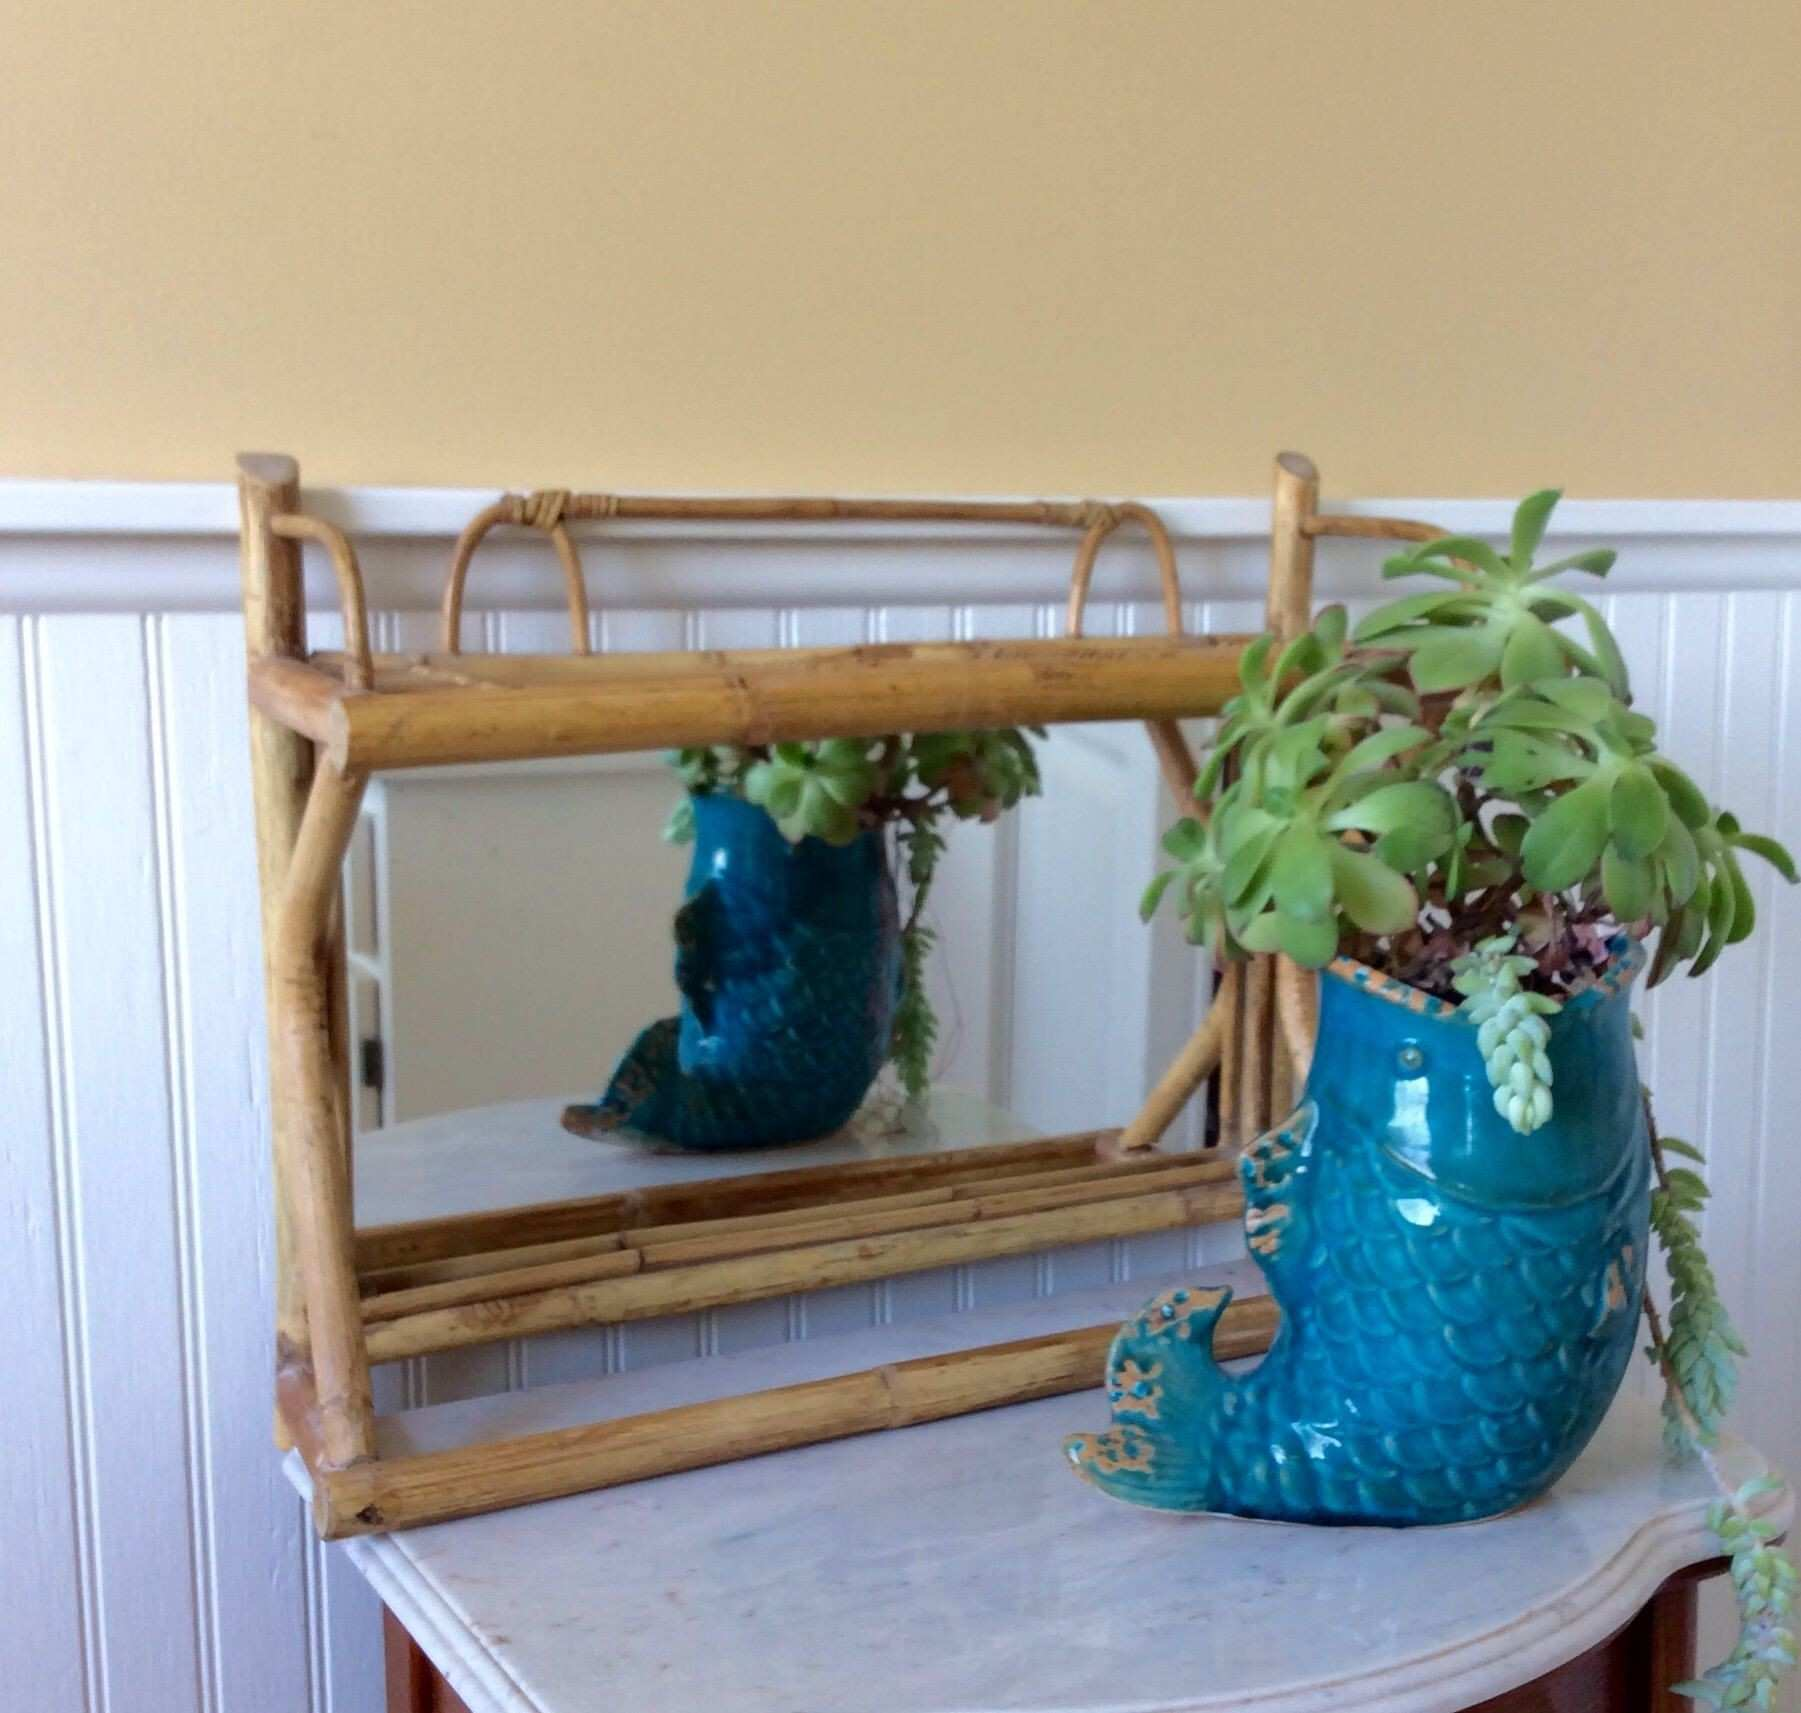 Vintage Decorative Bamboo Wall Shelf with Mirror Towel Holder